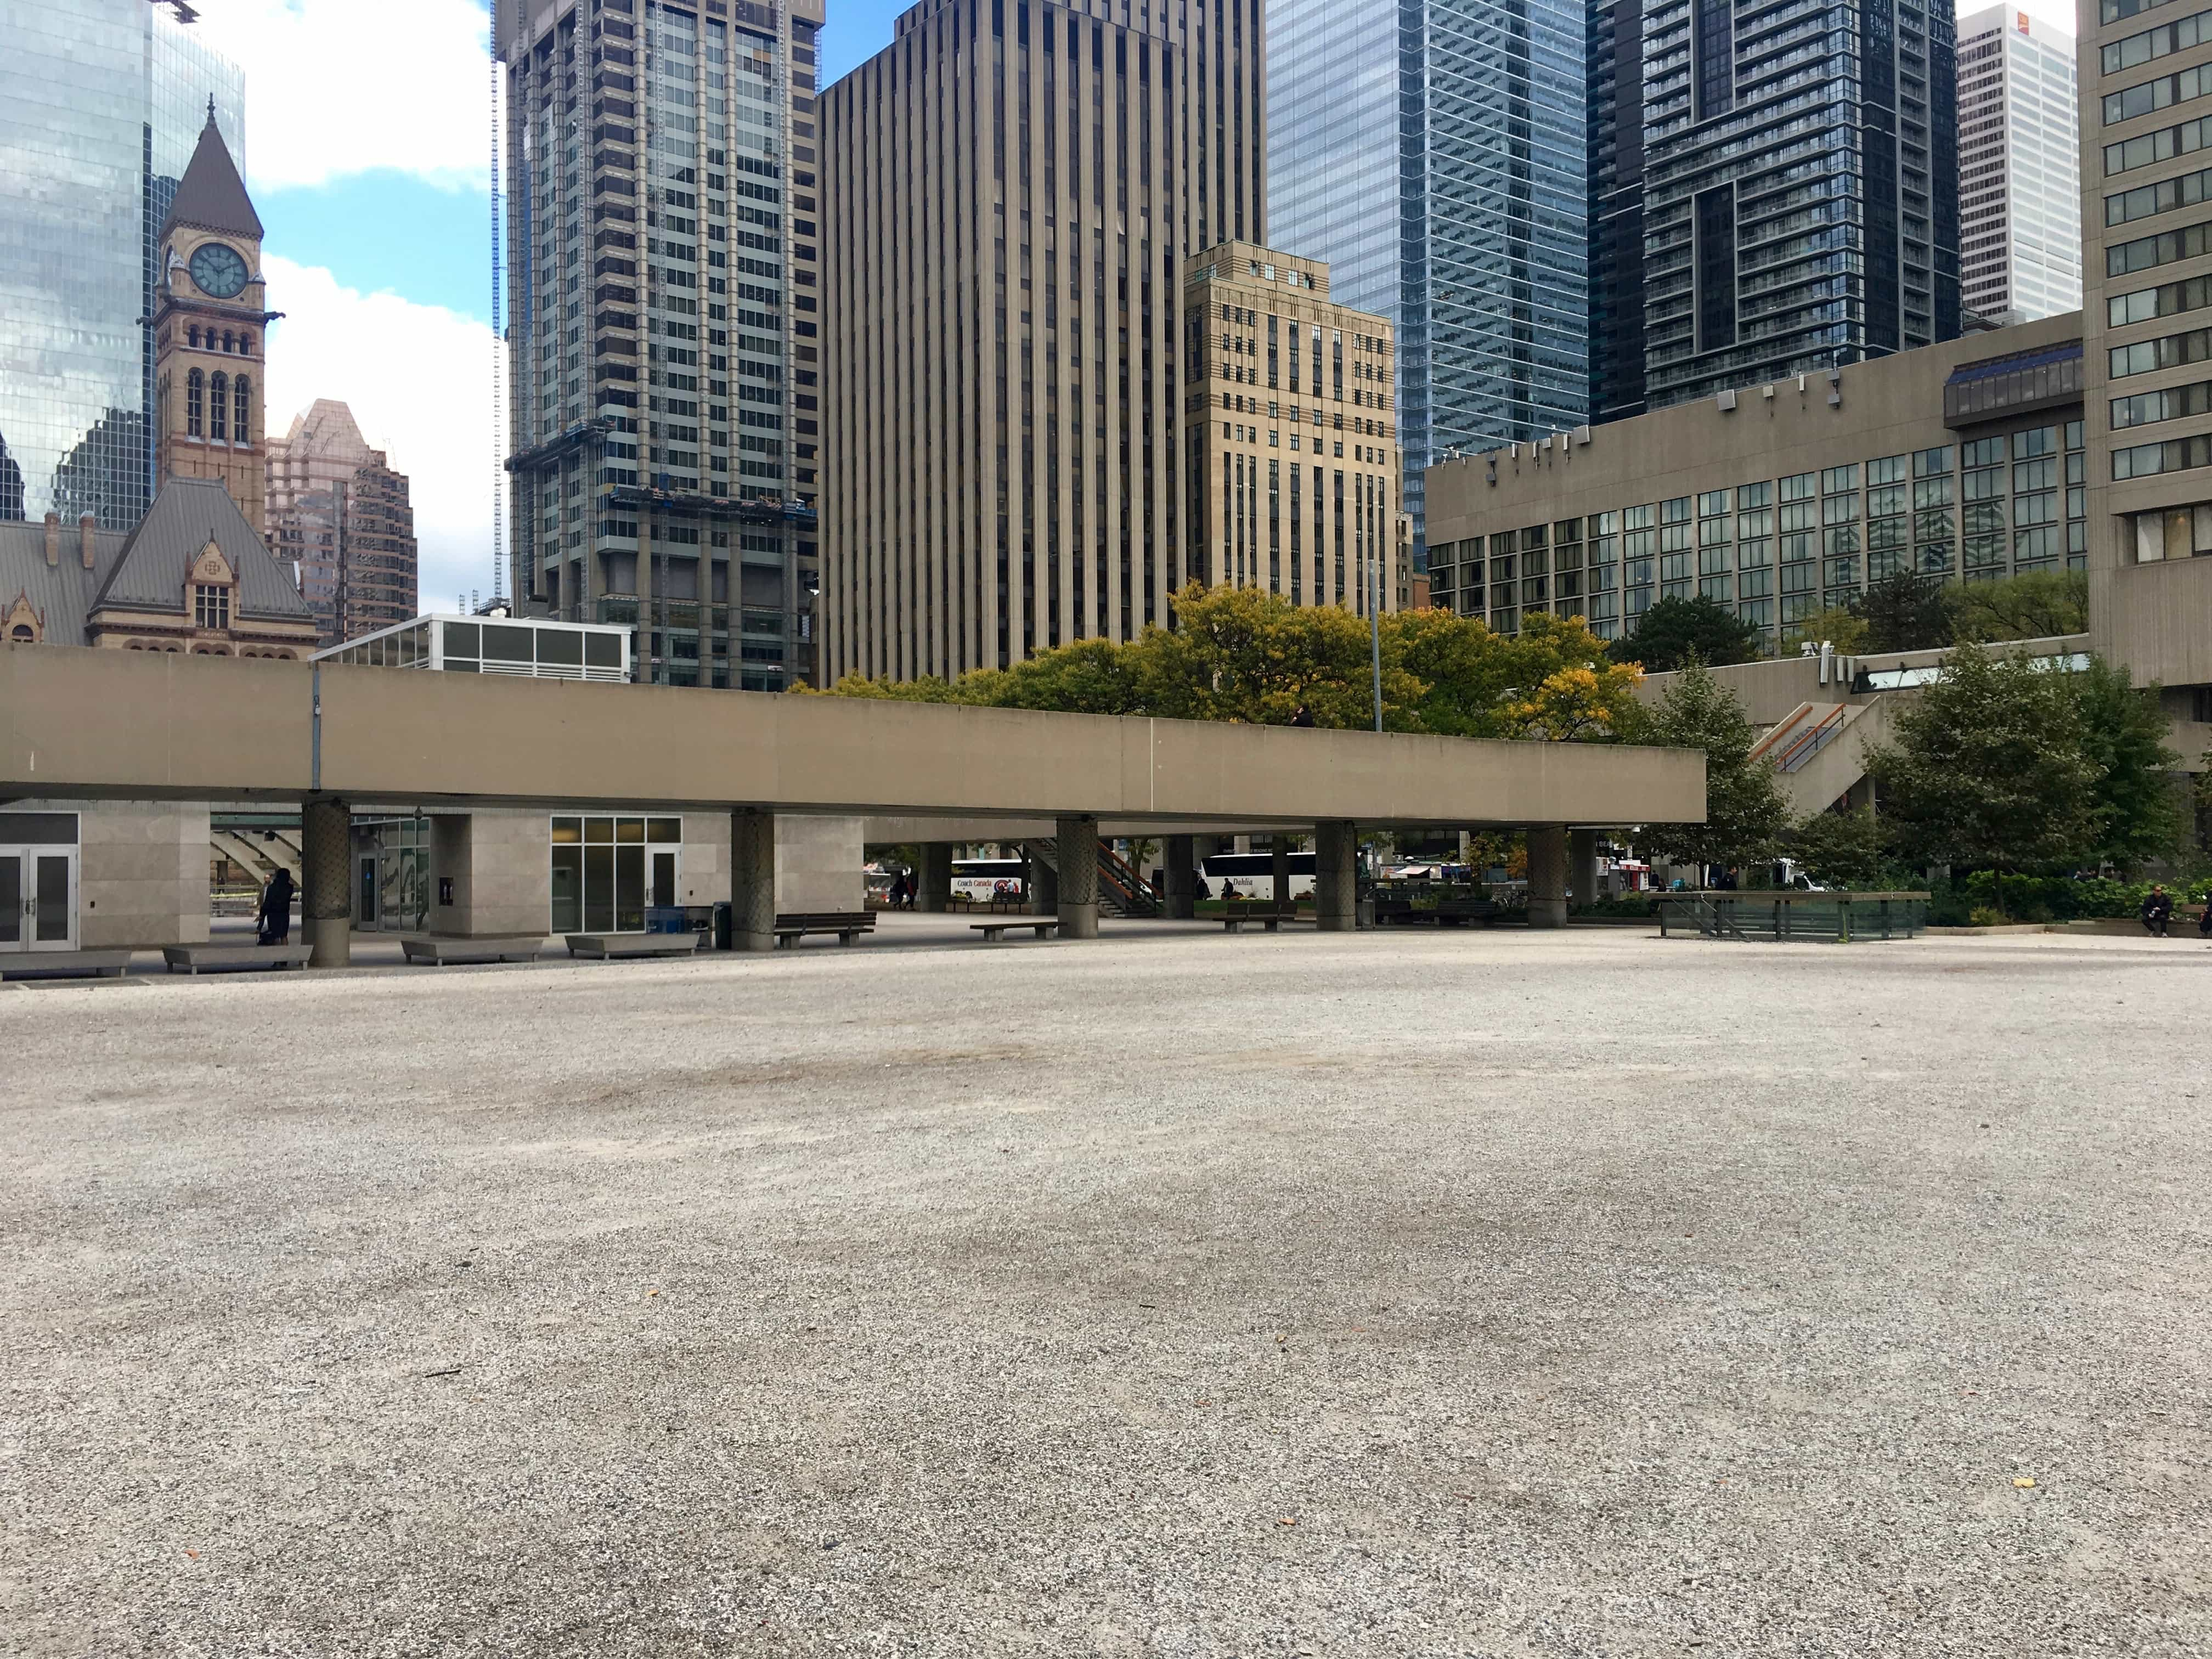 1:52 p.m. Oct. 26, 2017 The south-west corner of Nathan Phillips Square.